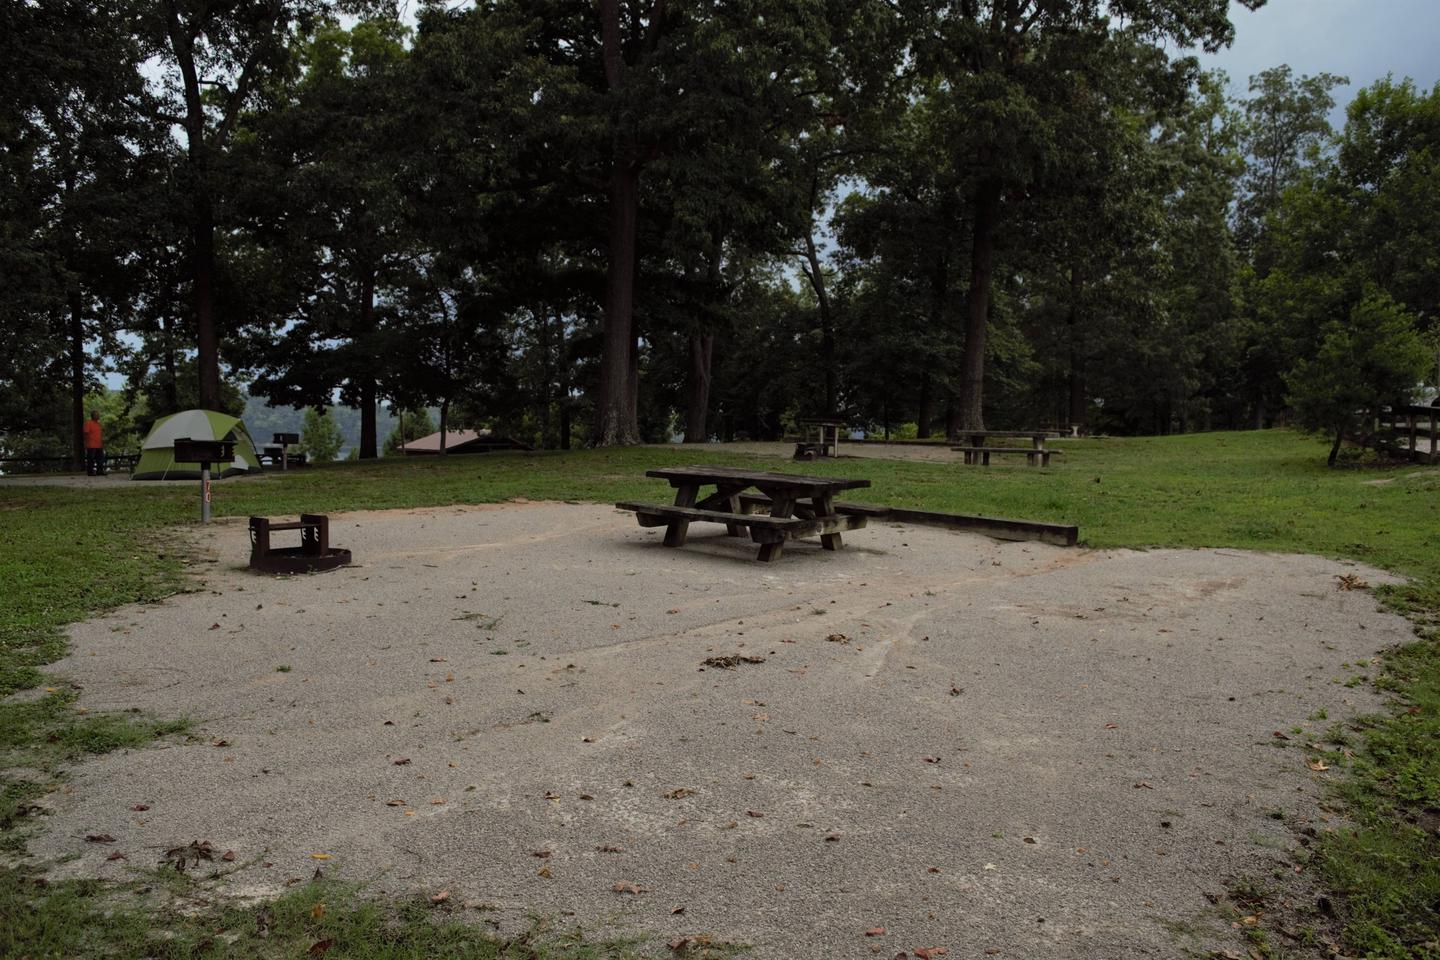 WILLOW GROVE CAMPGROUND SITE #70 PREVIEW PHOTOWILLOW GROVE CAMPGROUND SITE #70